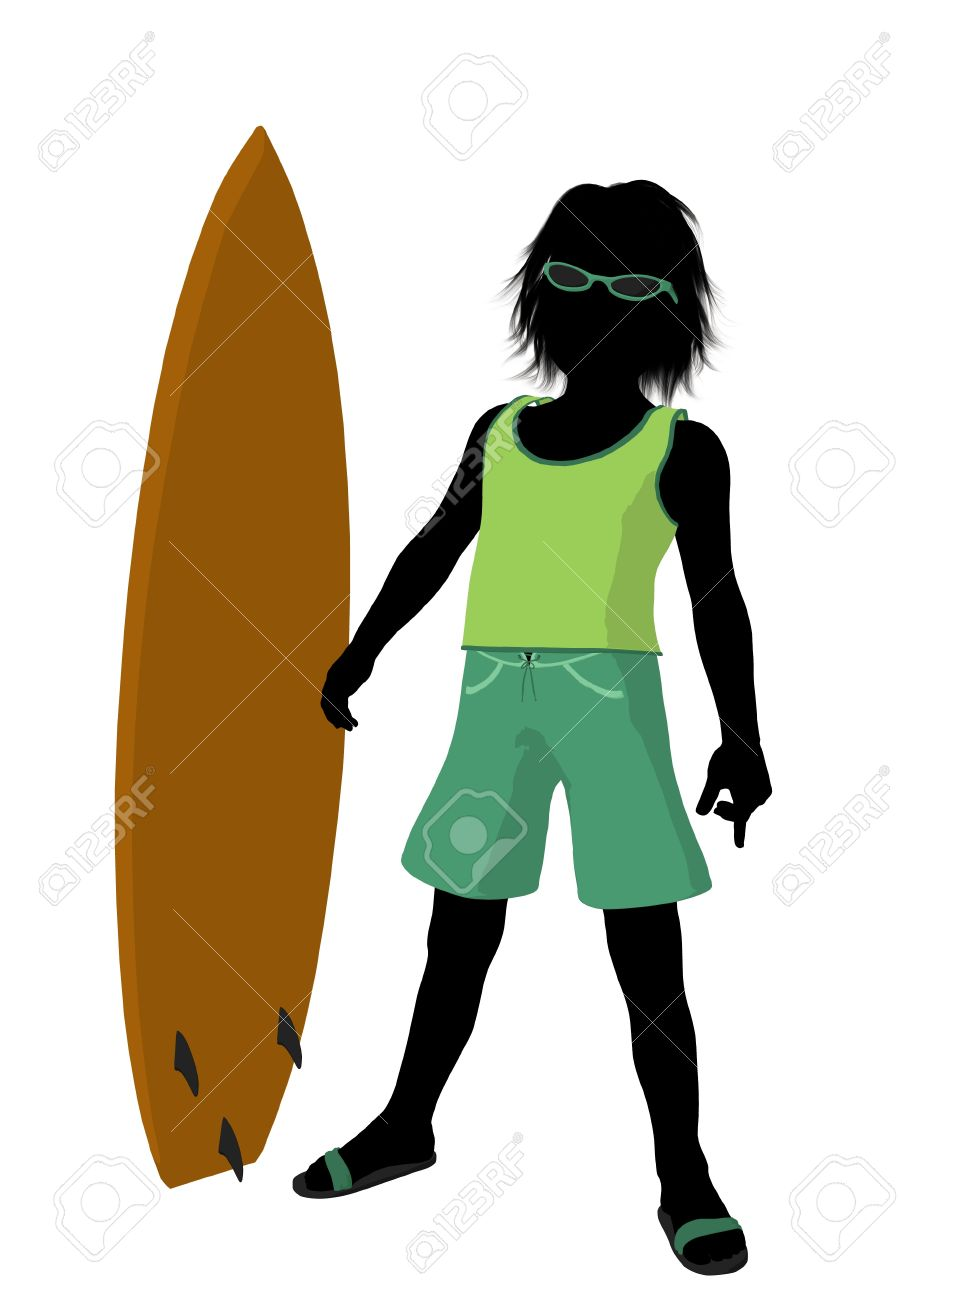 Silhouette boy surfboard clipart picture royalty free stock Beach Boy With Surfboard Illustration Silhouette On A White ... picture royalty free stock